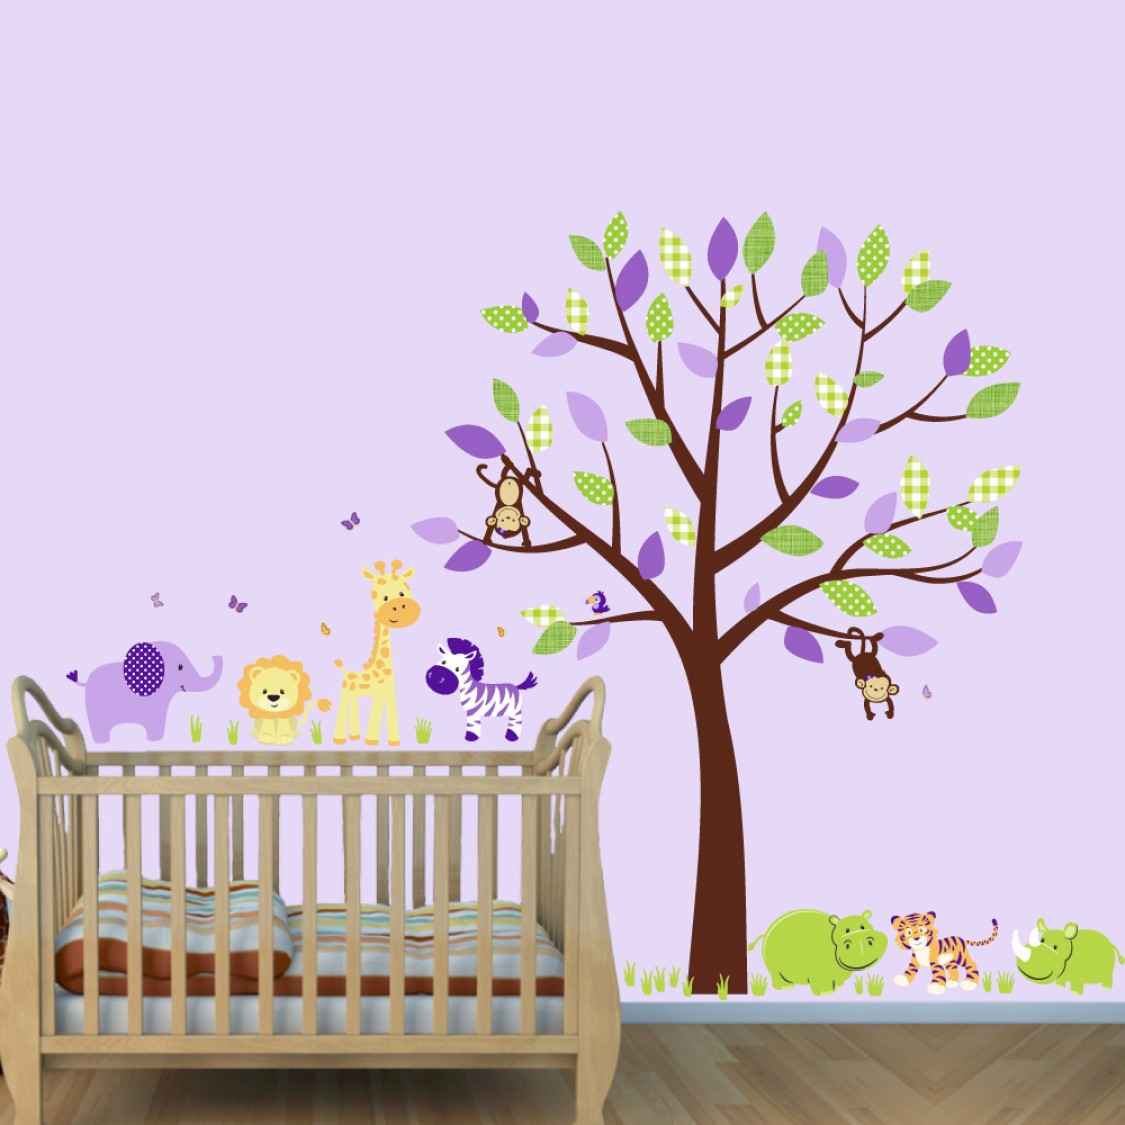 Purple Jungle Animal Murals With Hippo Wall Decal For Kids